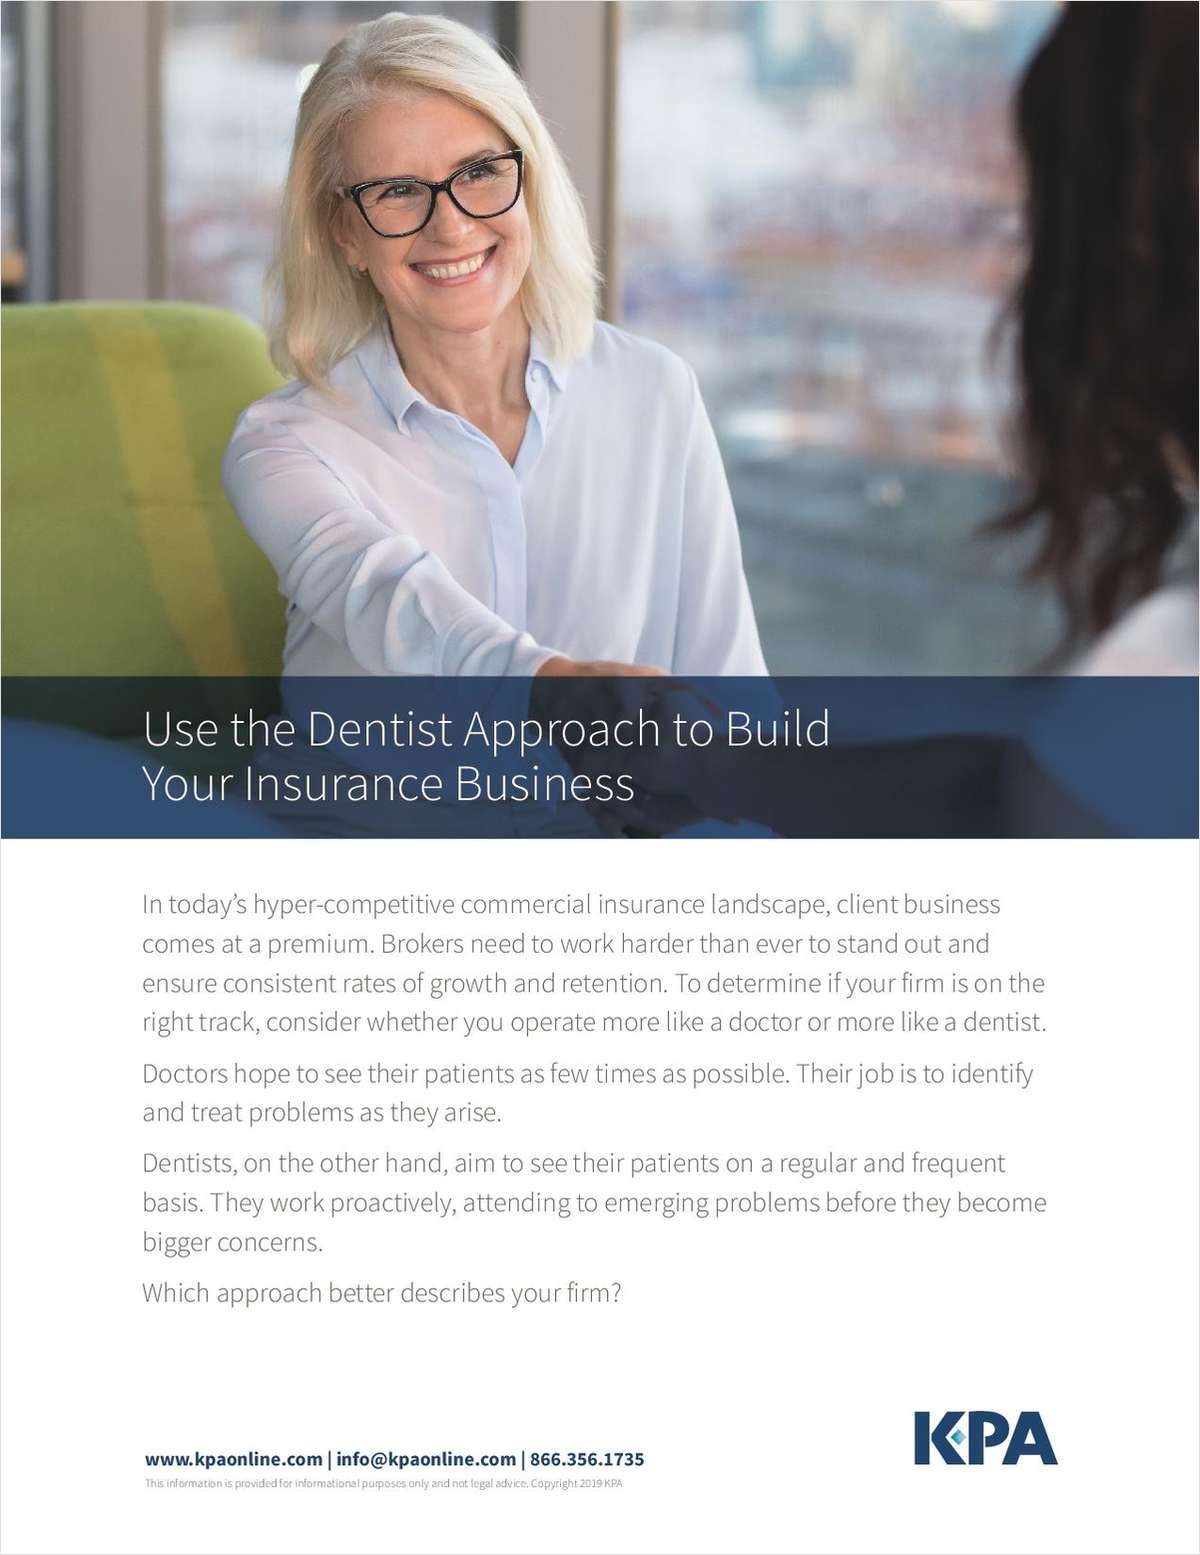 Use the Dentist Approach to Build Your Insurance Business